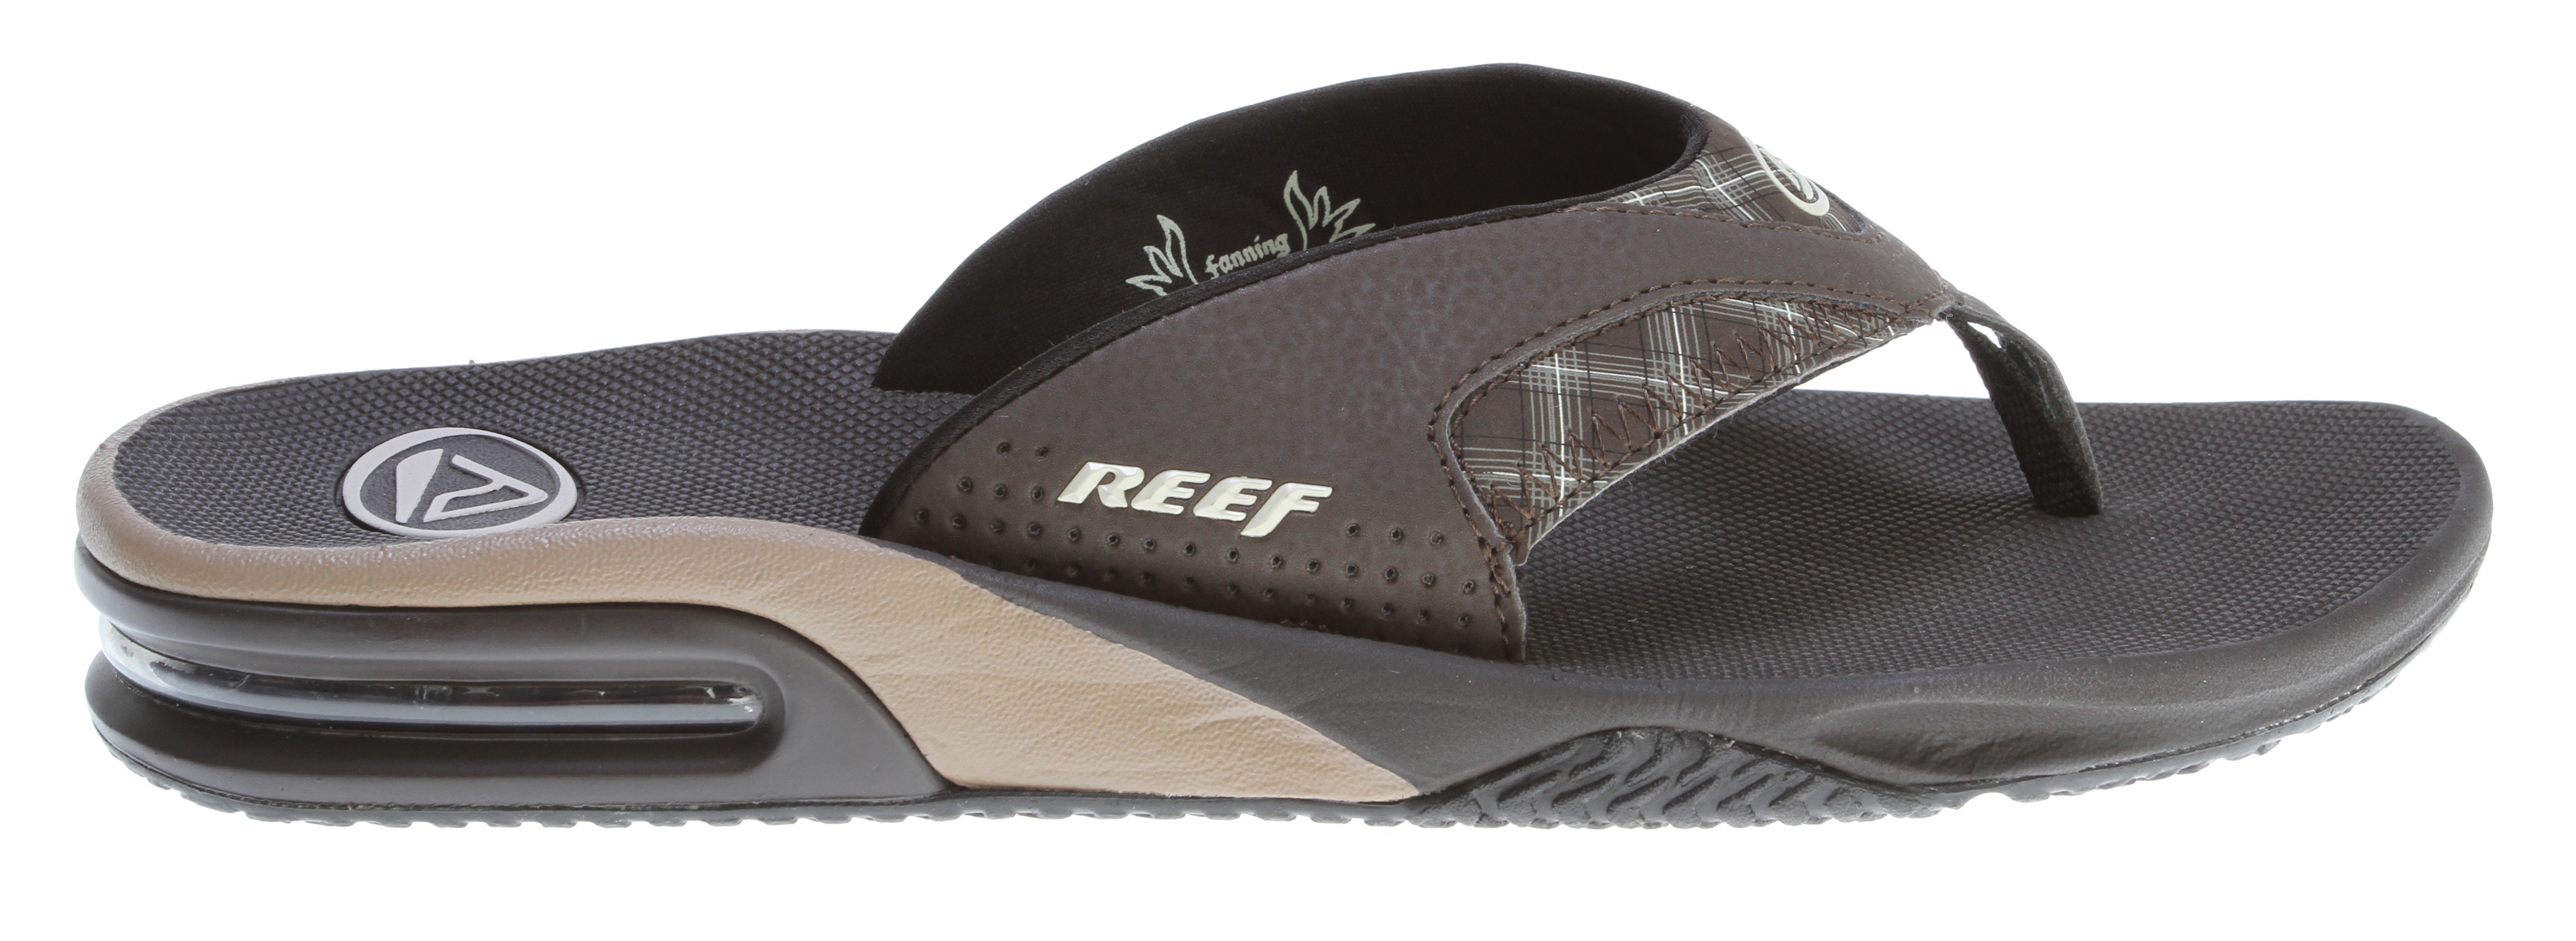 "Surf Key Features of the Reef Fanning Sandals: Comfortable, water friendly synthetic nubuck upper contoured compression molded eva footbed with anatomical arch support Full 360° heel airbag enclosed in soft polyurethane Church key to open your ""soda"" bottle Reef icon herringbone rubber outsole - $38.95"